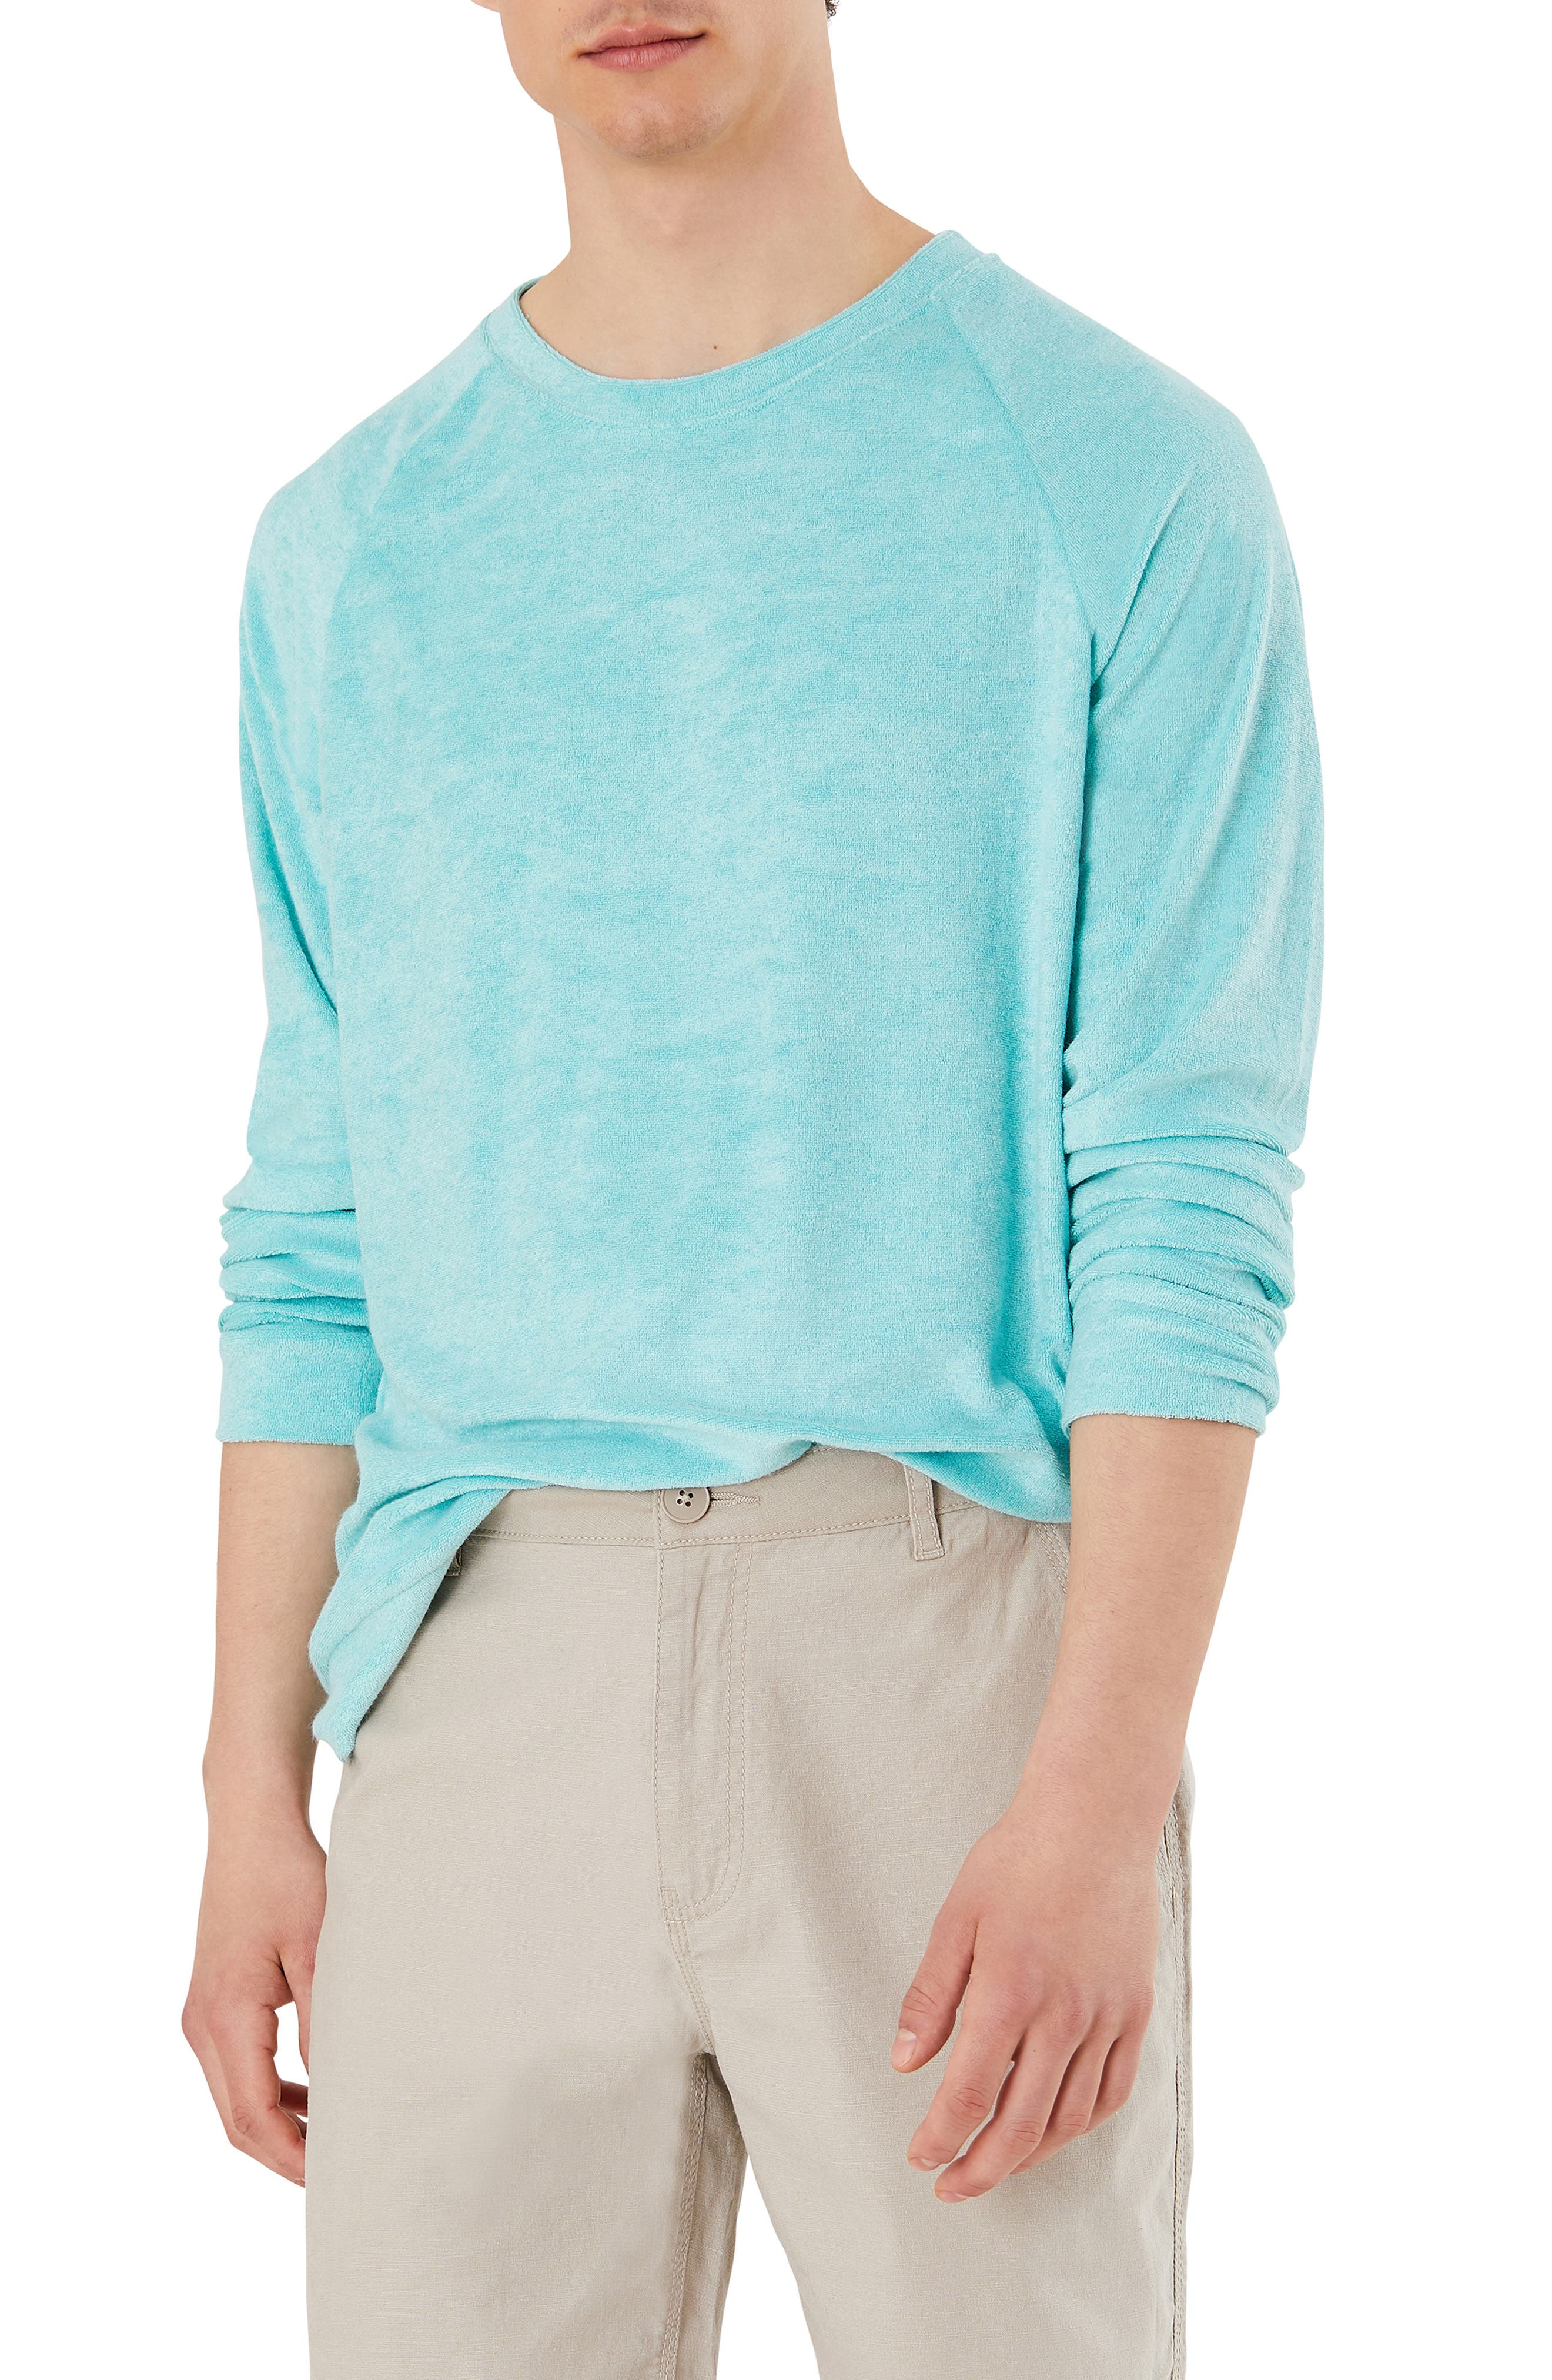 Onia Stretch Linen Shorts at Nordstrom Rack